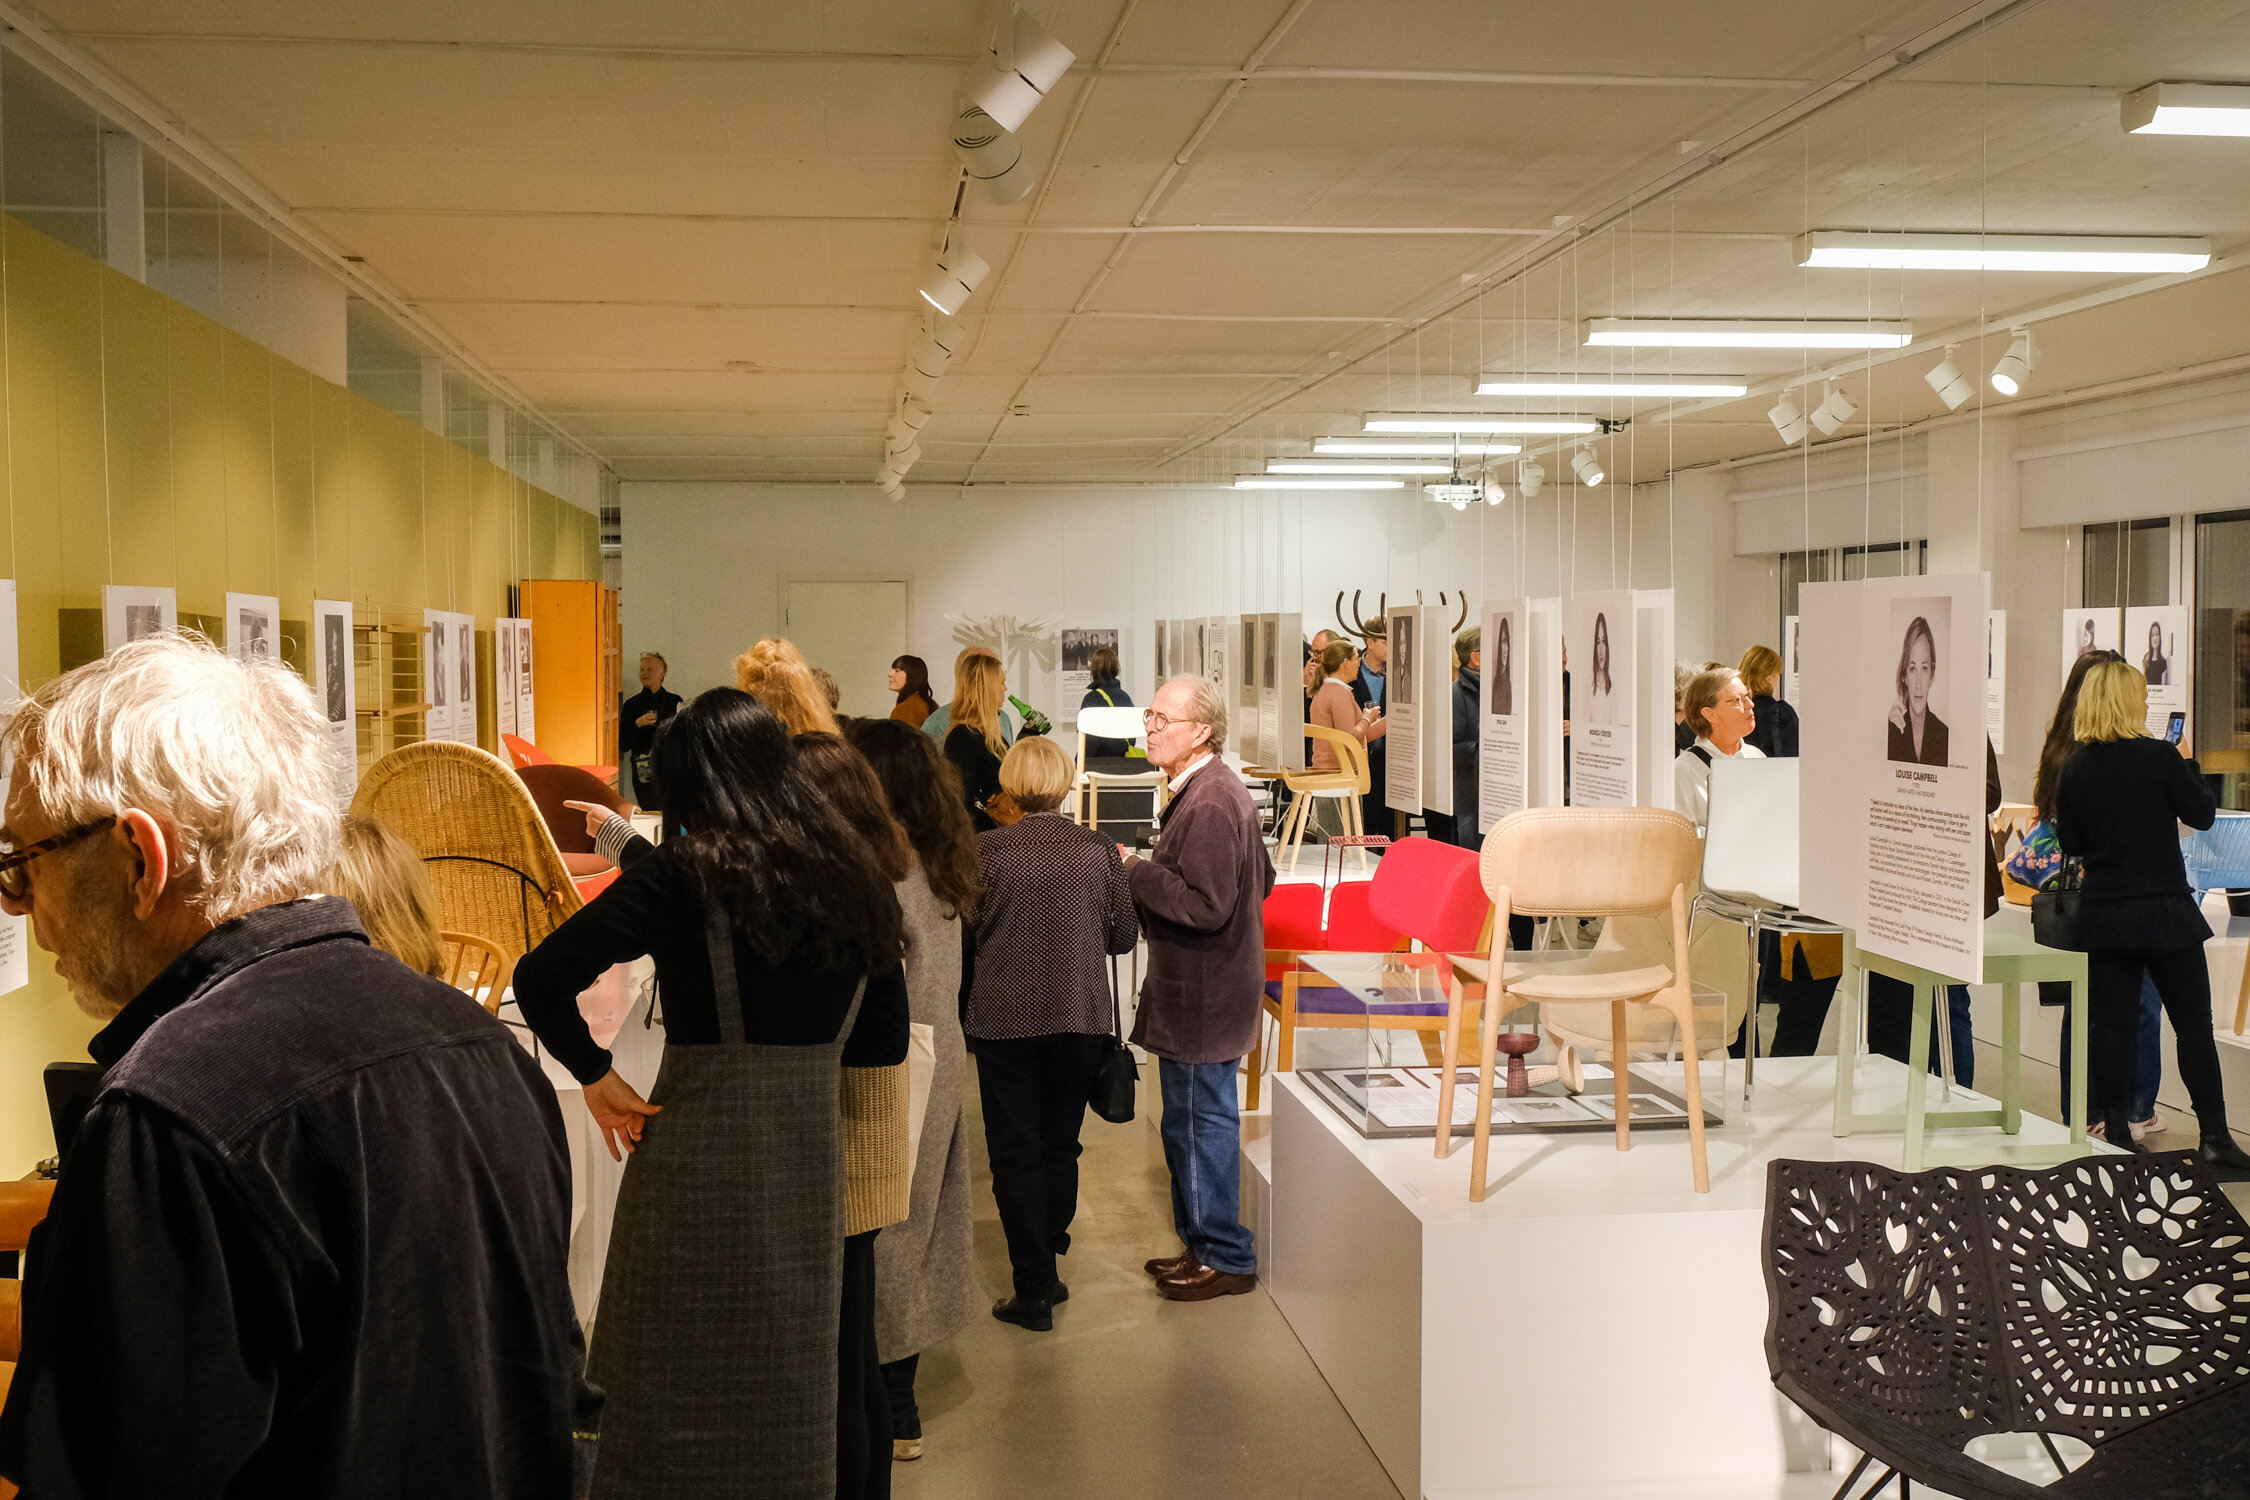 IMAGE FROM THE VERNISSAGE OF THE EXHIBITION FEMALE TRACES